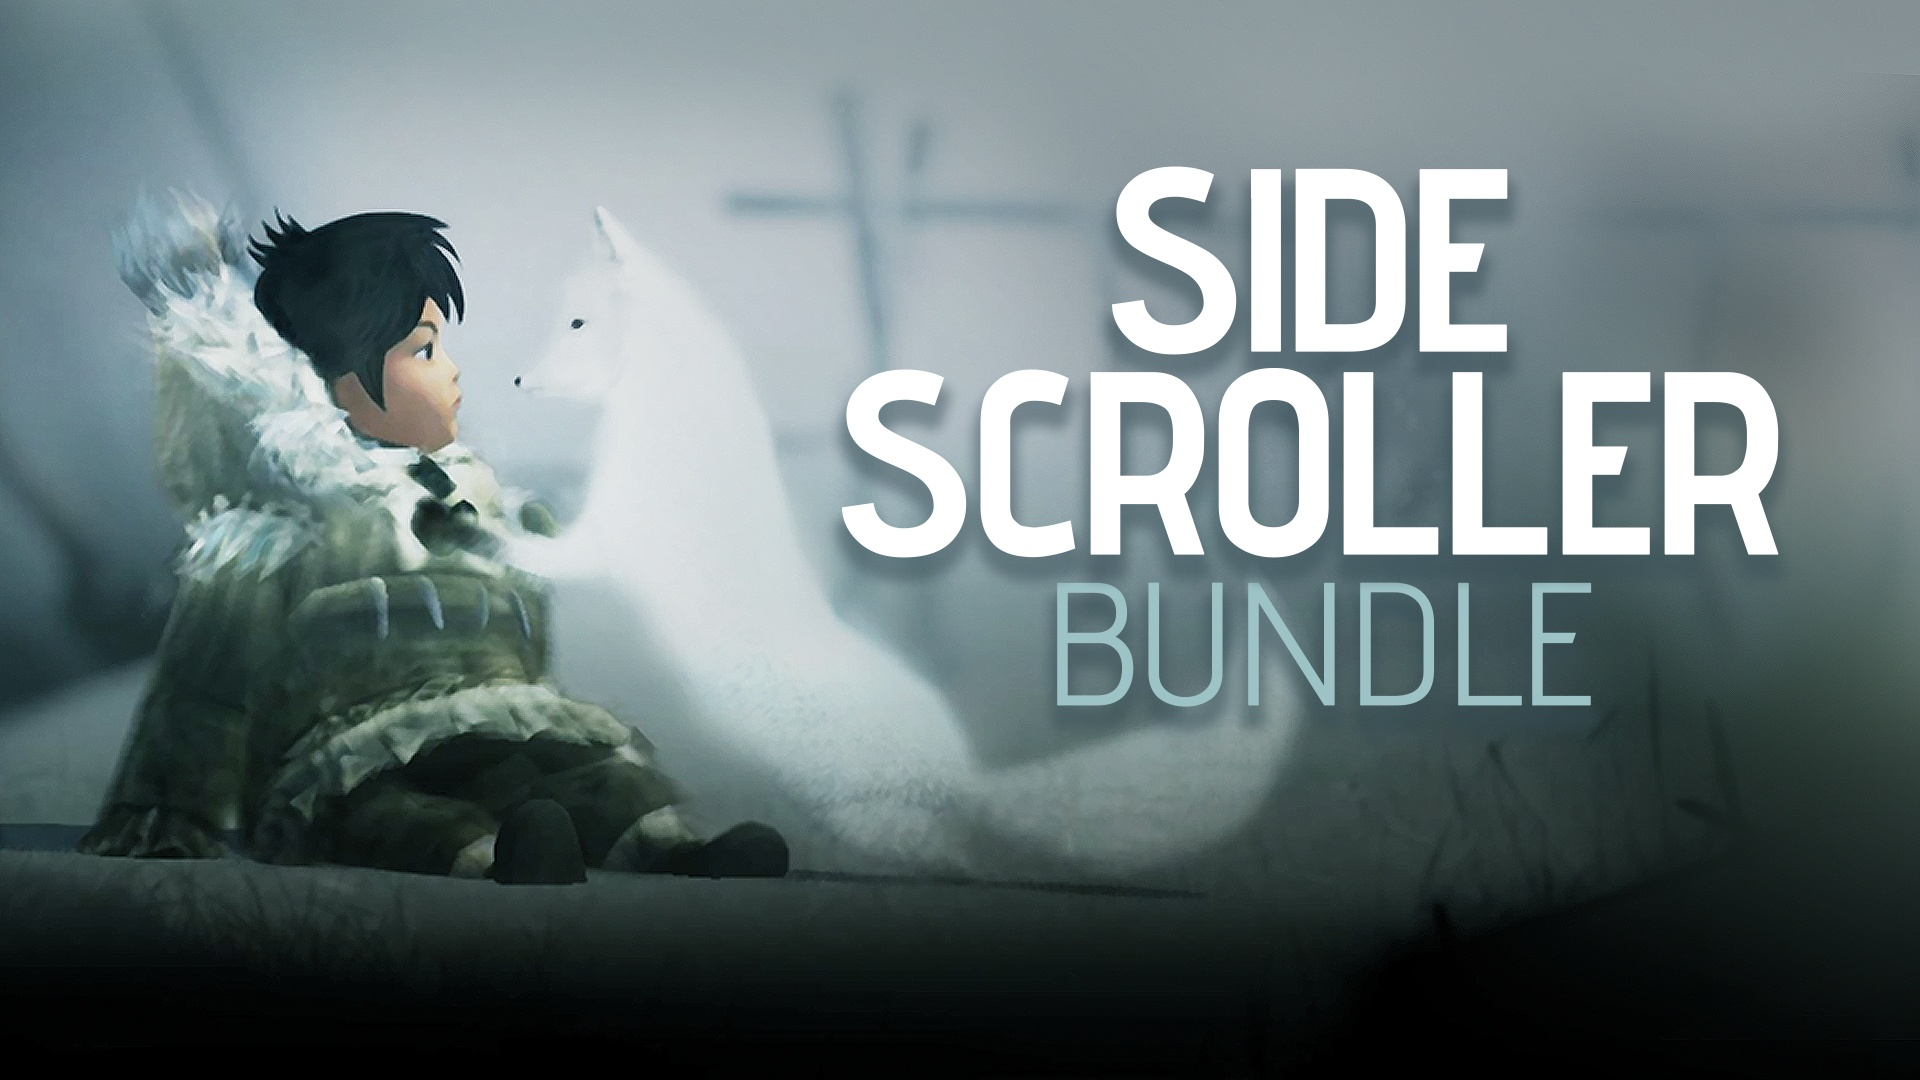 Side Scroller Bundle | Steam Game Bundle | Fanatical